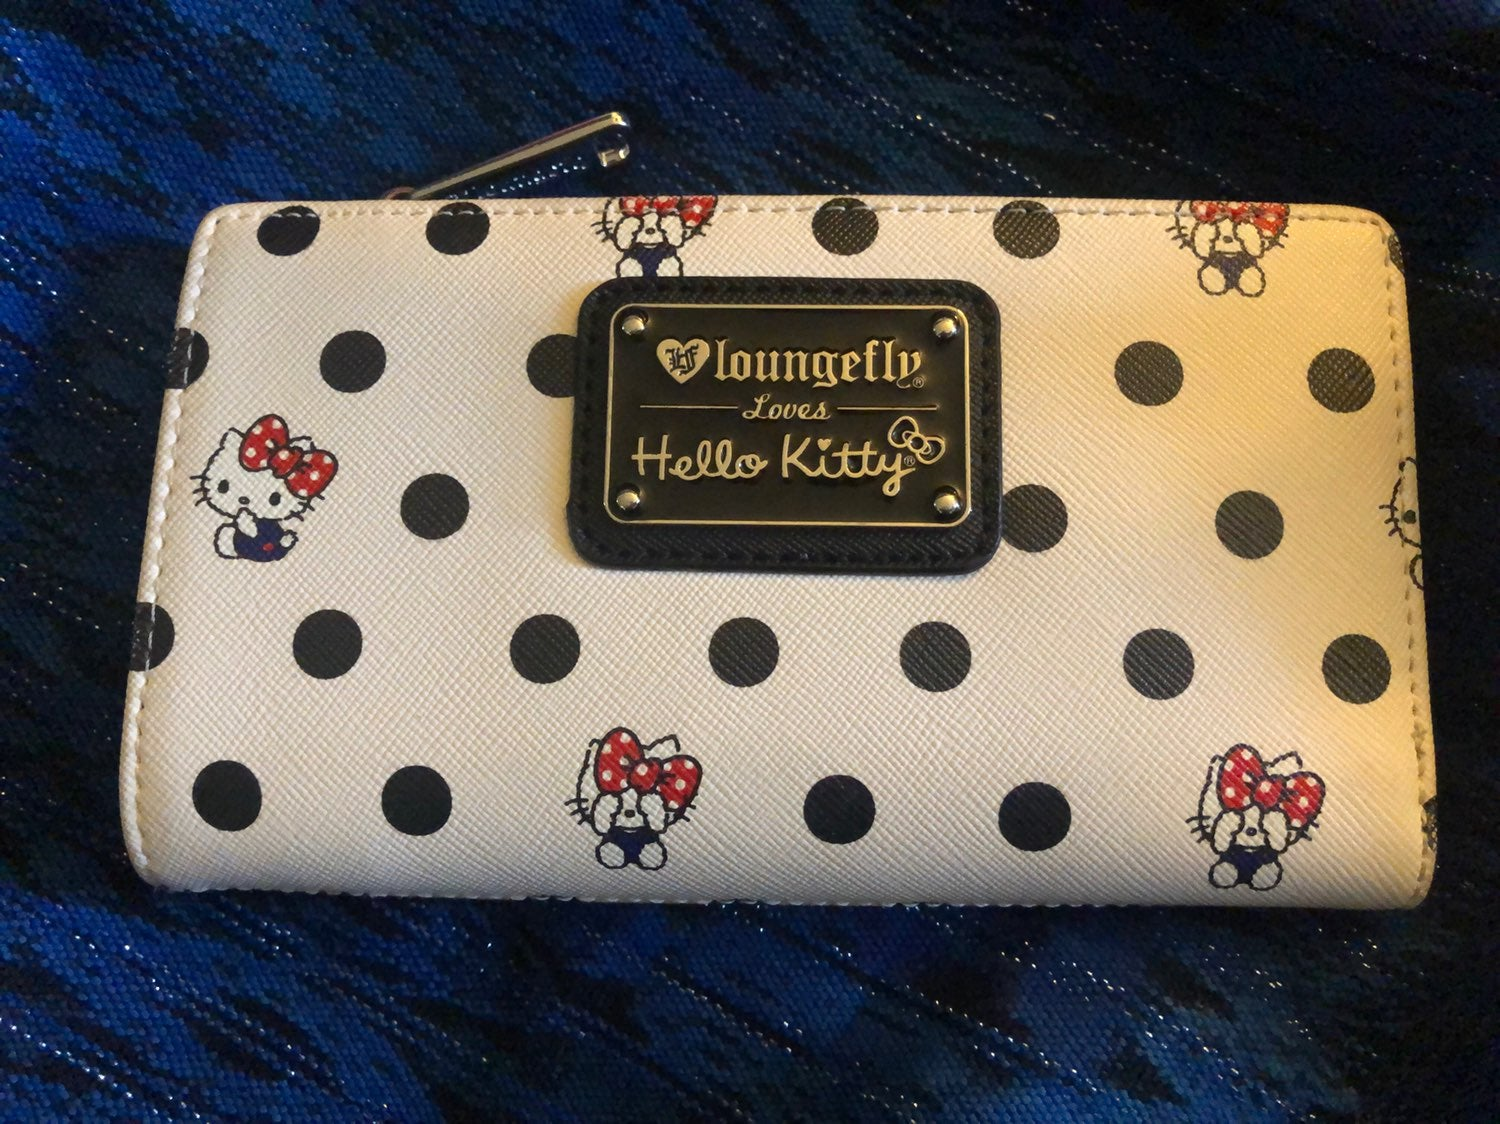 Hello Kitty By Loungefly Billfold